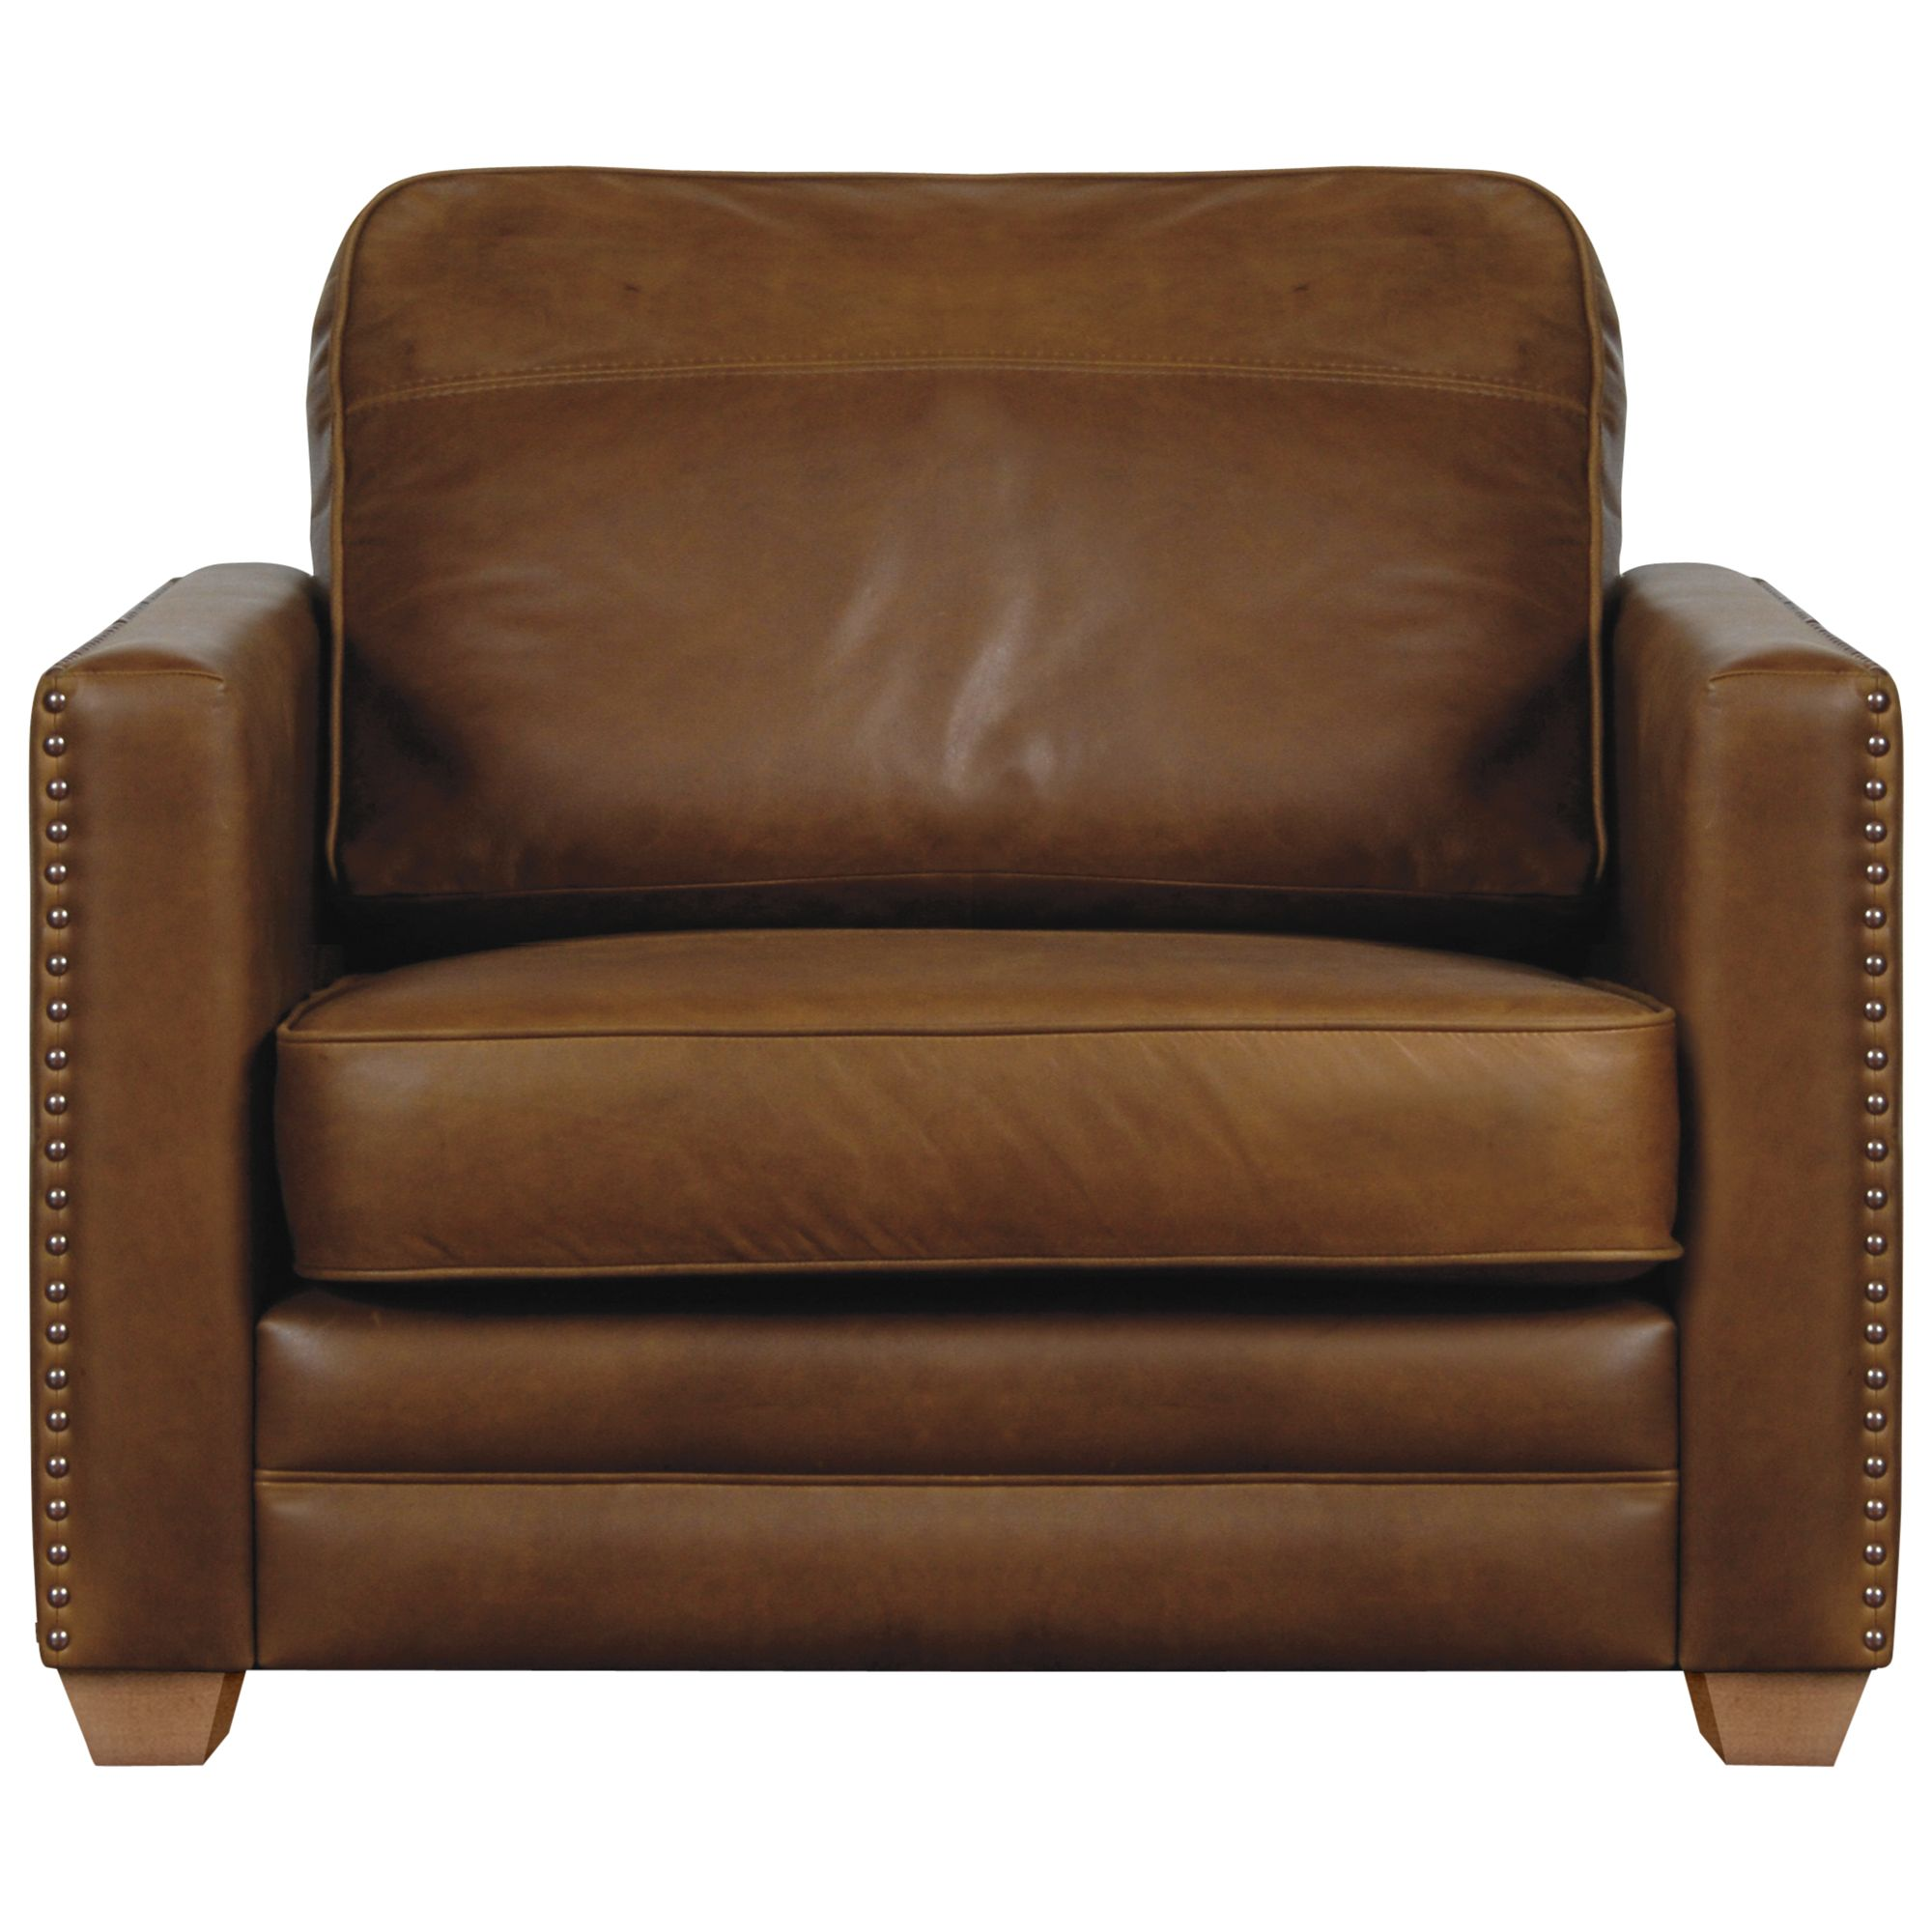 John Lewis Hudson Leather Snuggler